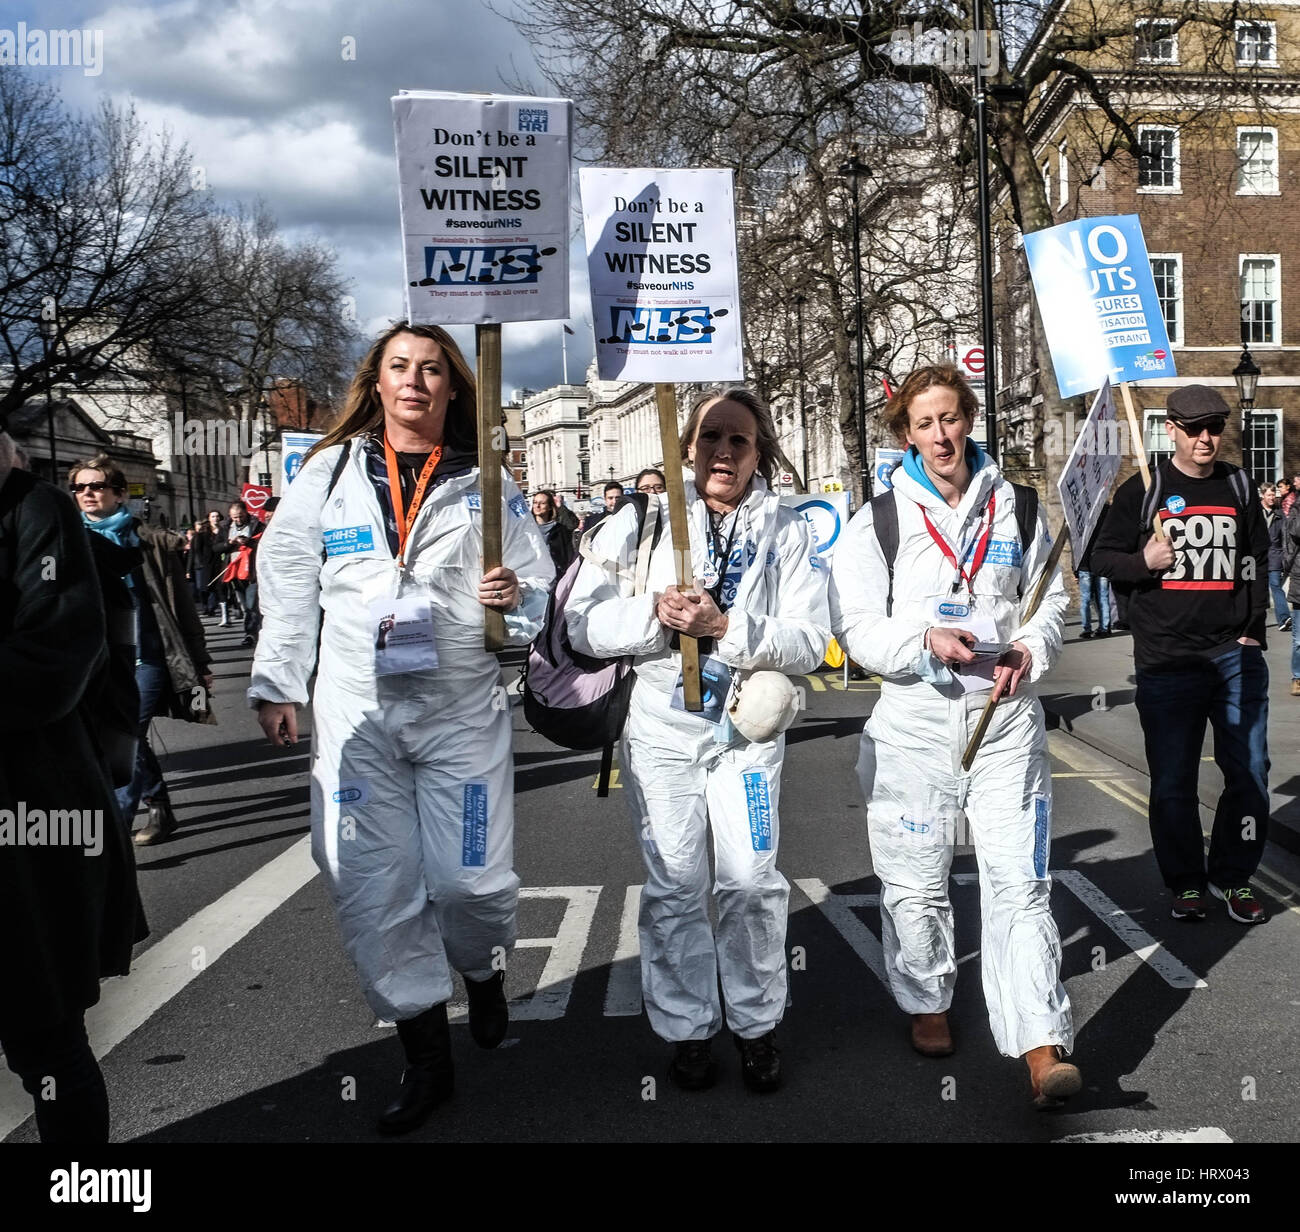 London, UK. 4th March, 2017. Thousands of protesters march from Tavistock Square to Parliament to demonstrate against - Stock Image